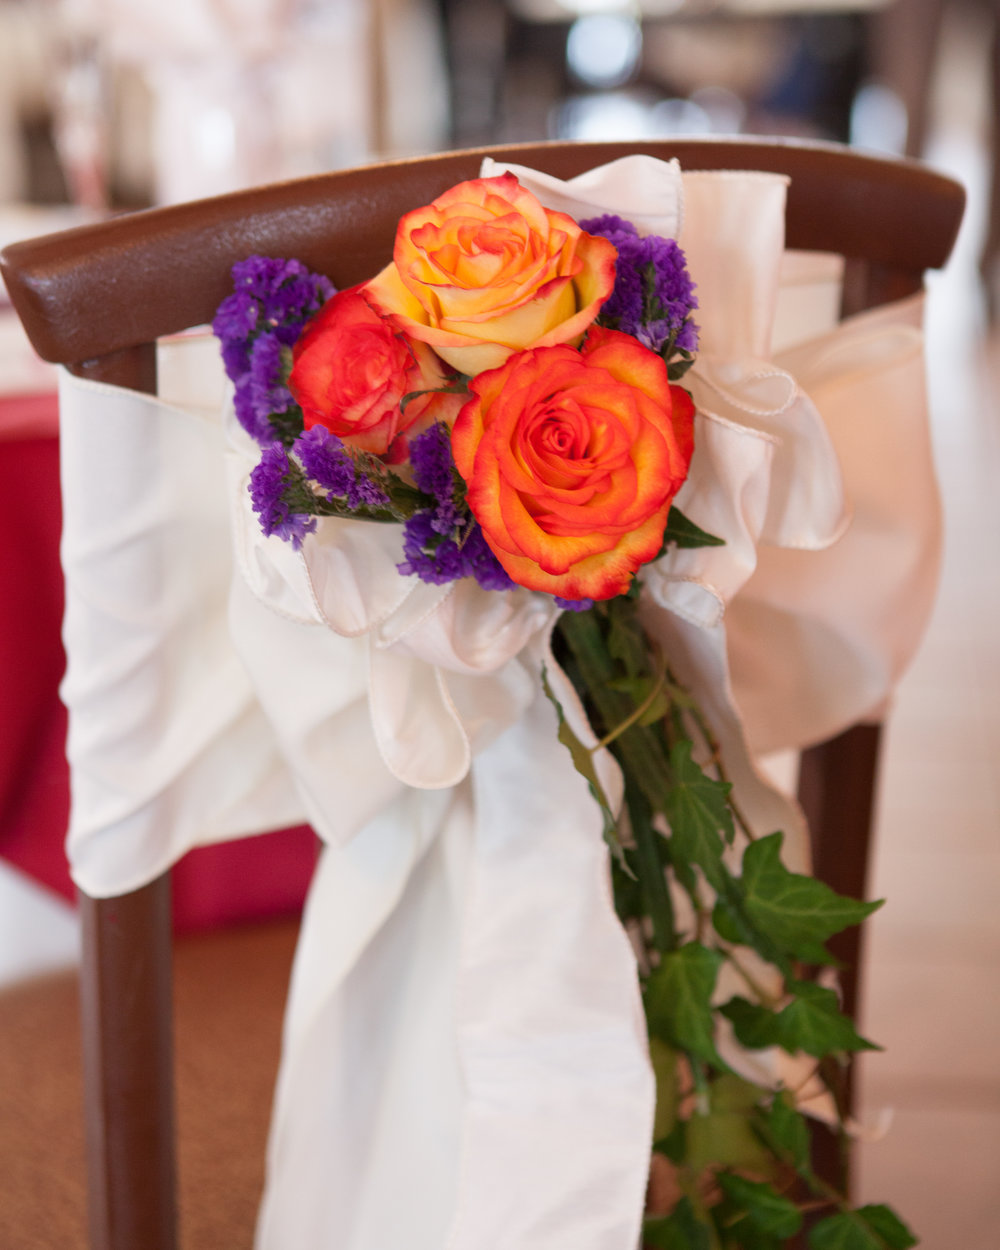 wedding reception chair bow with floral accent white red orange purple.jpg